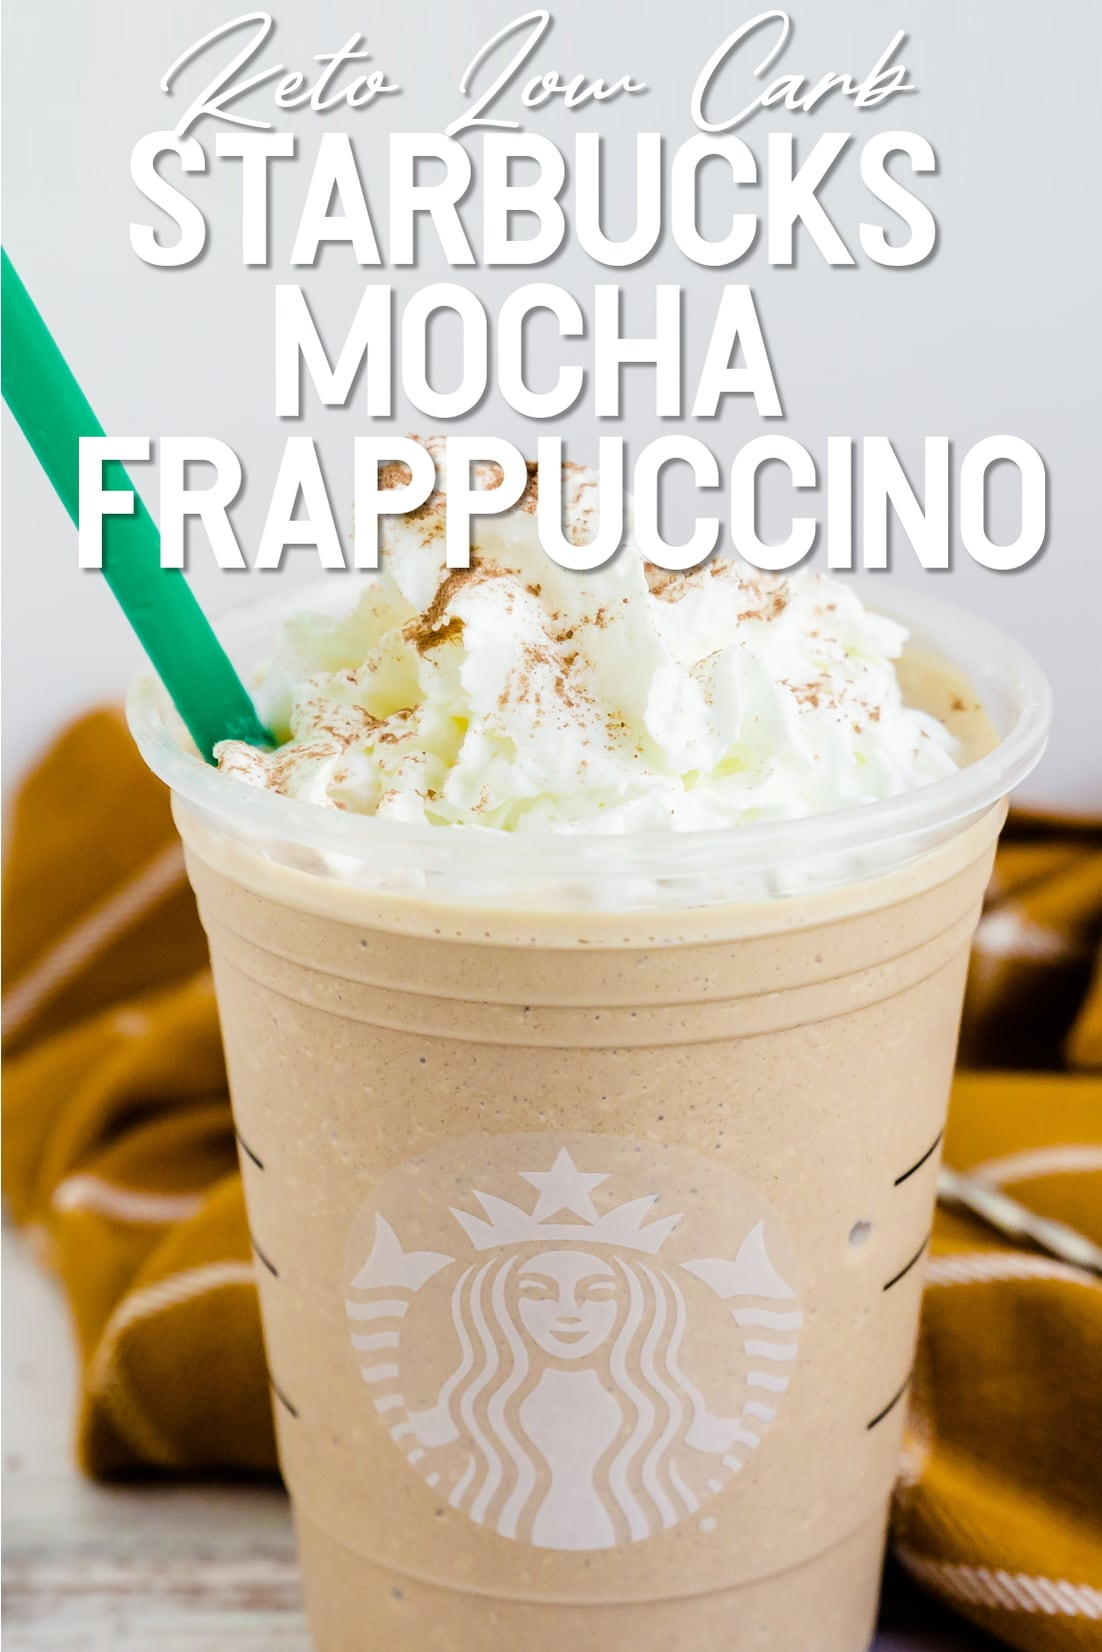 Keto Mocha Frappuccino in a cup with a green straw